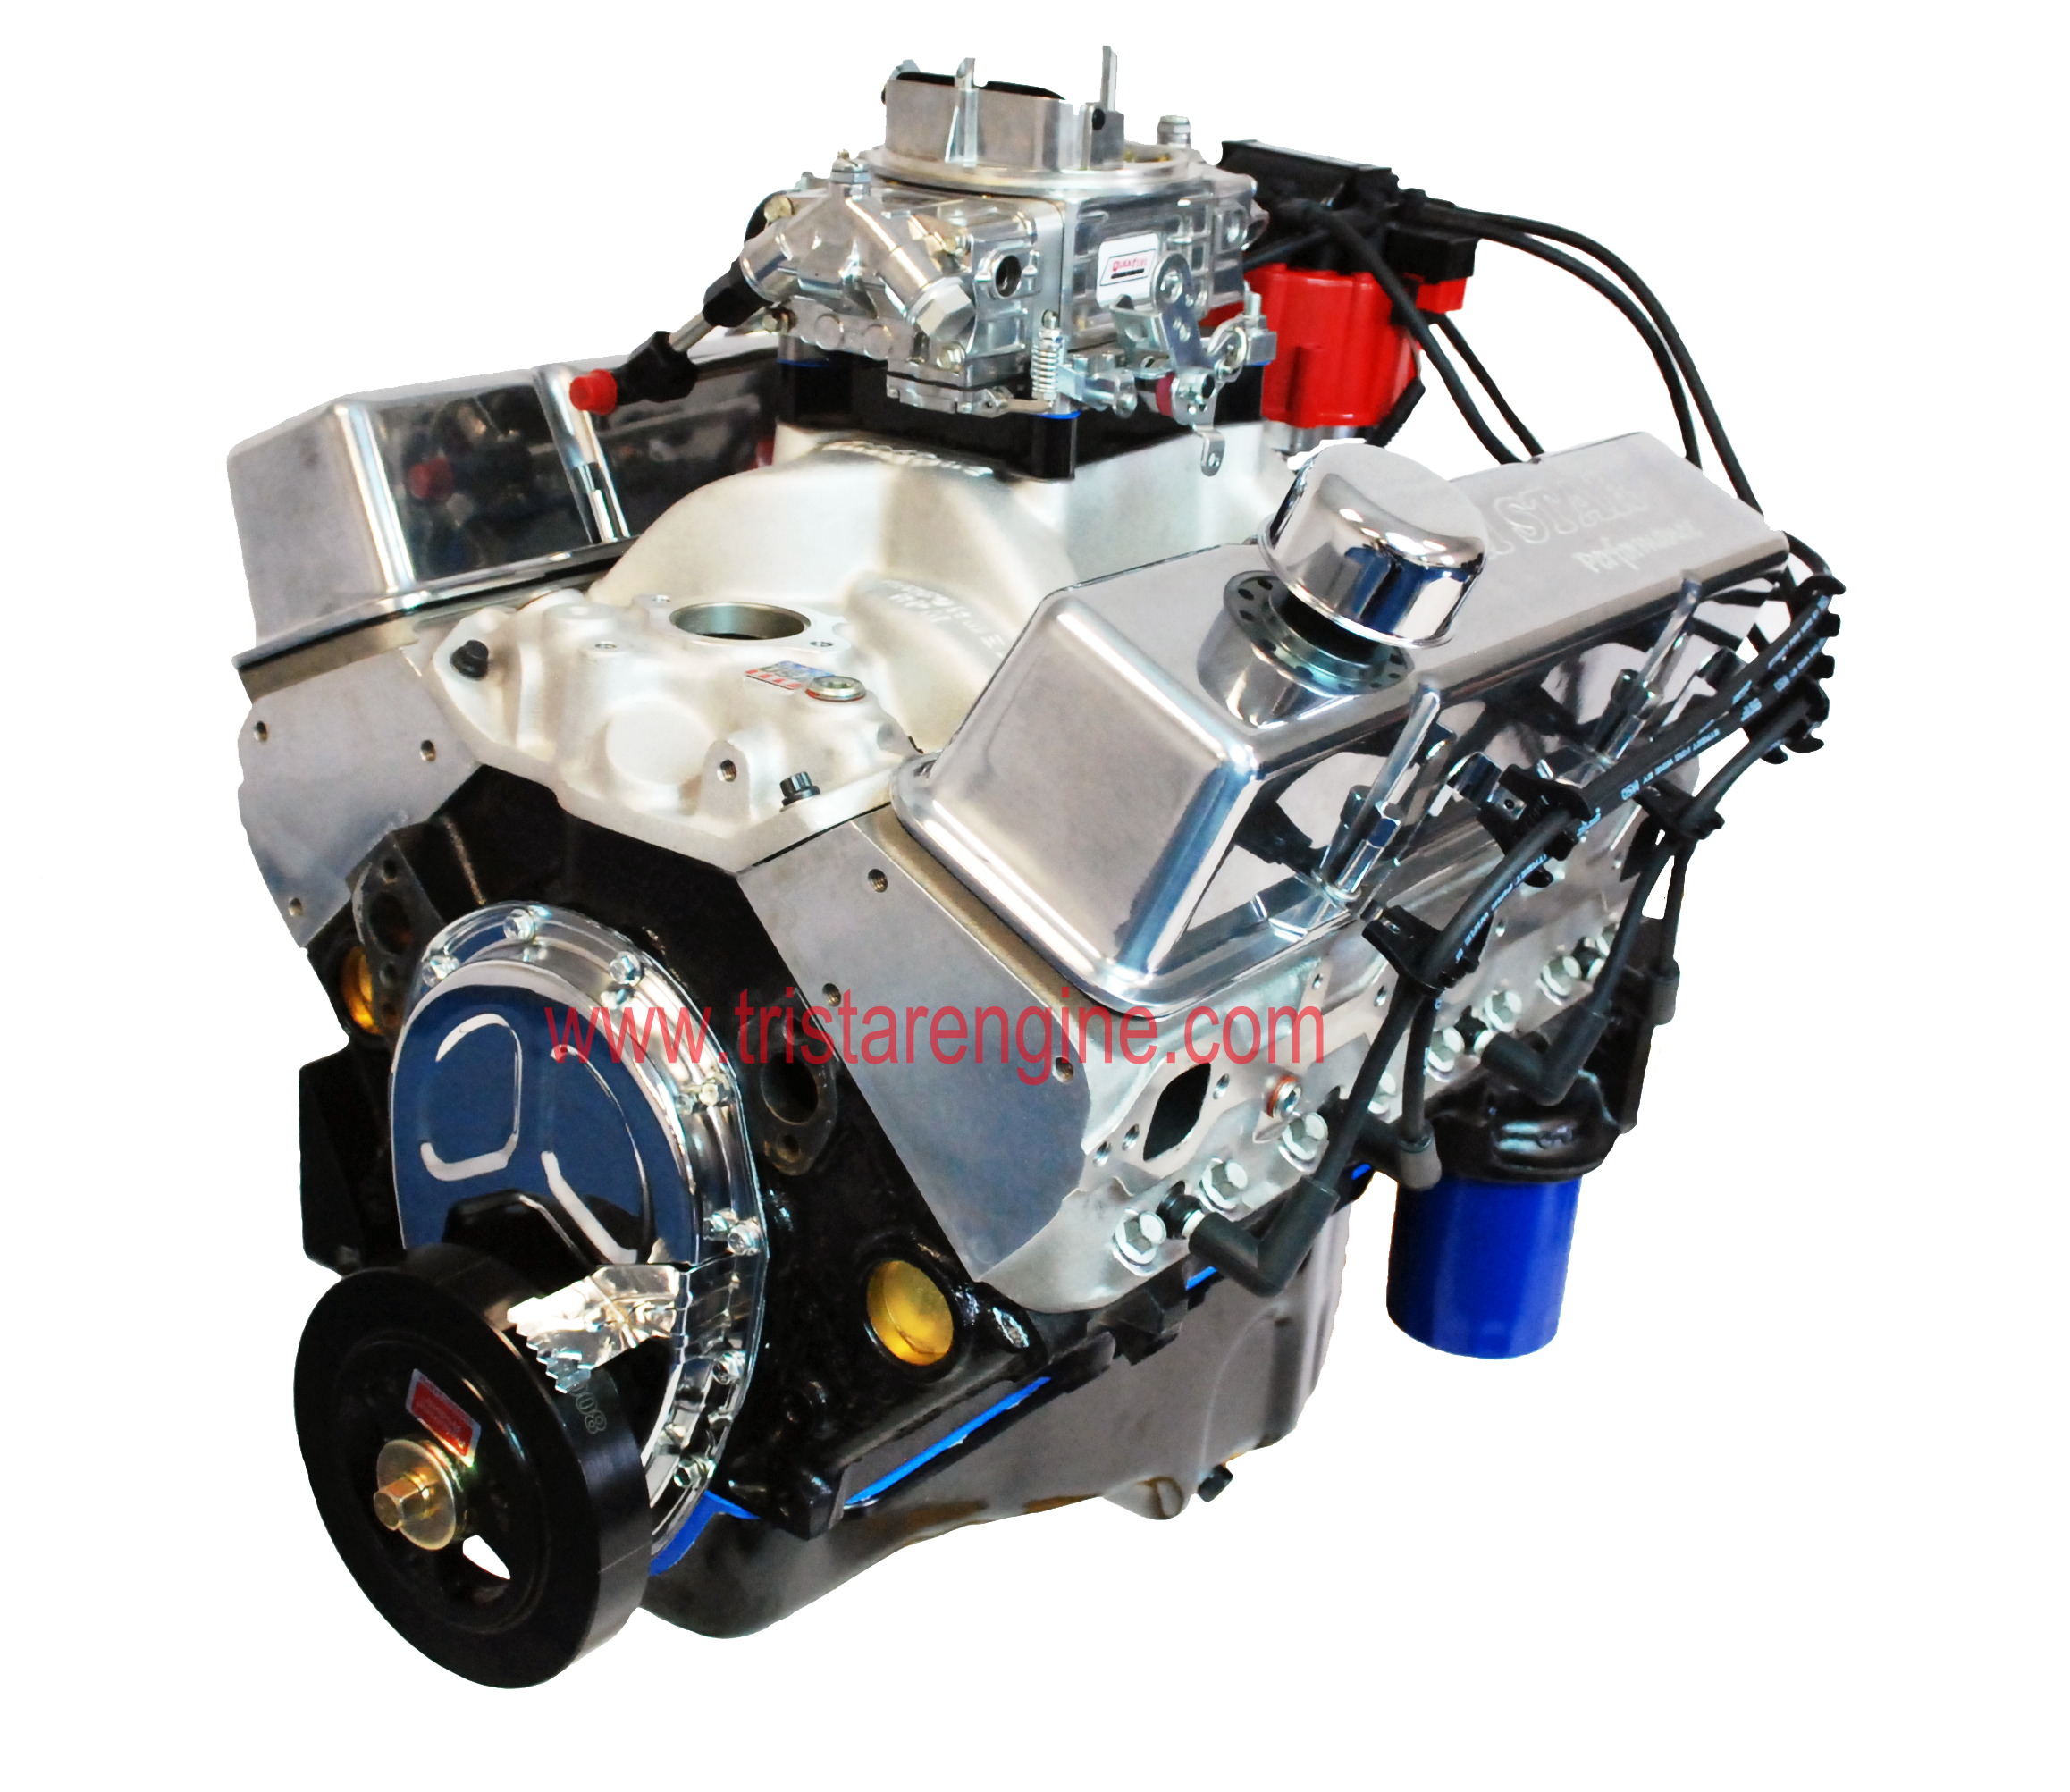 High Performance Engines For Sale